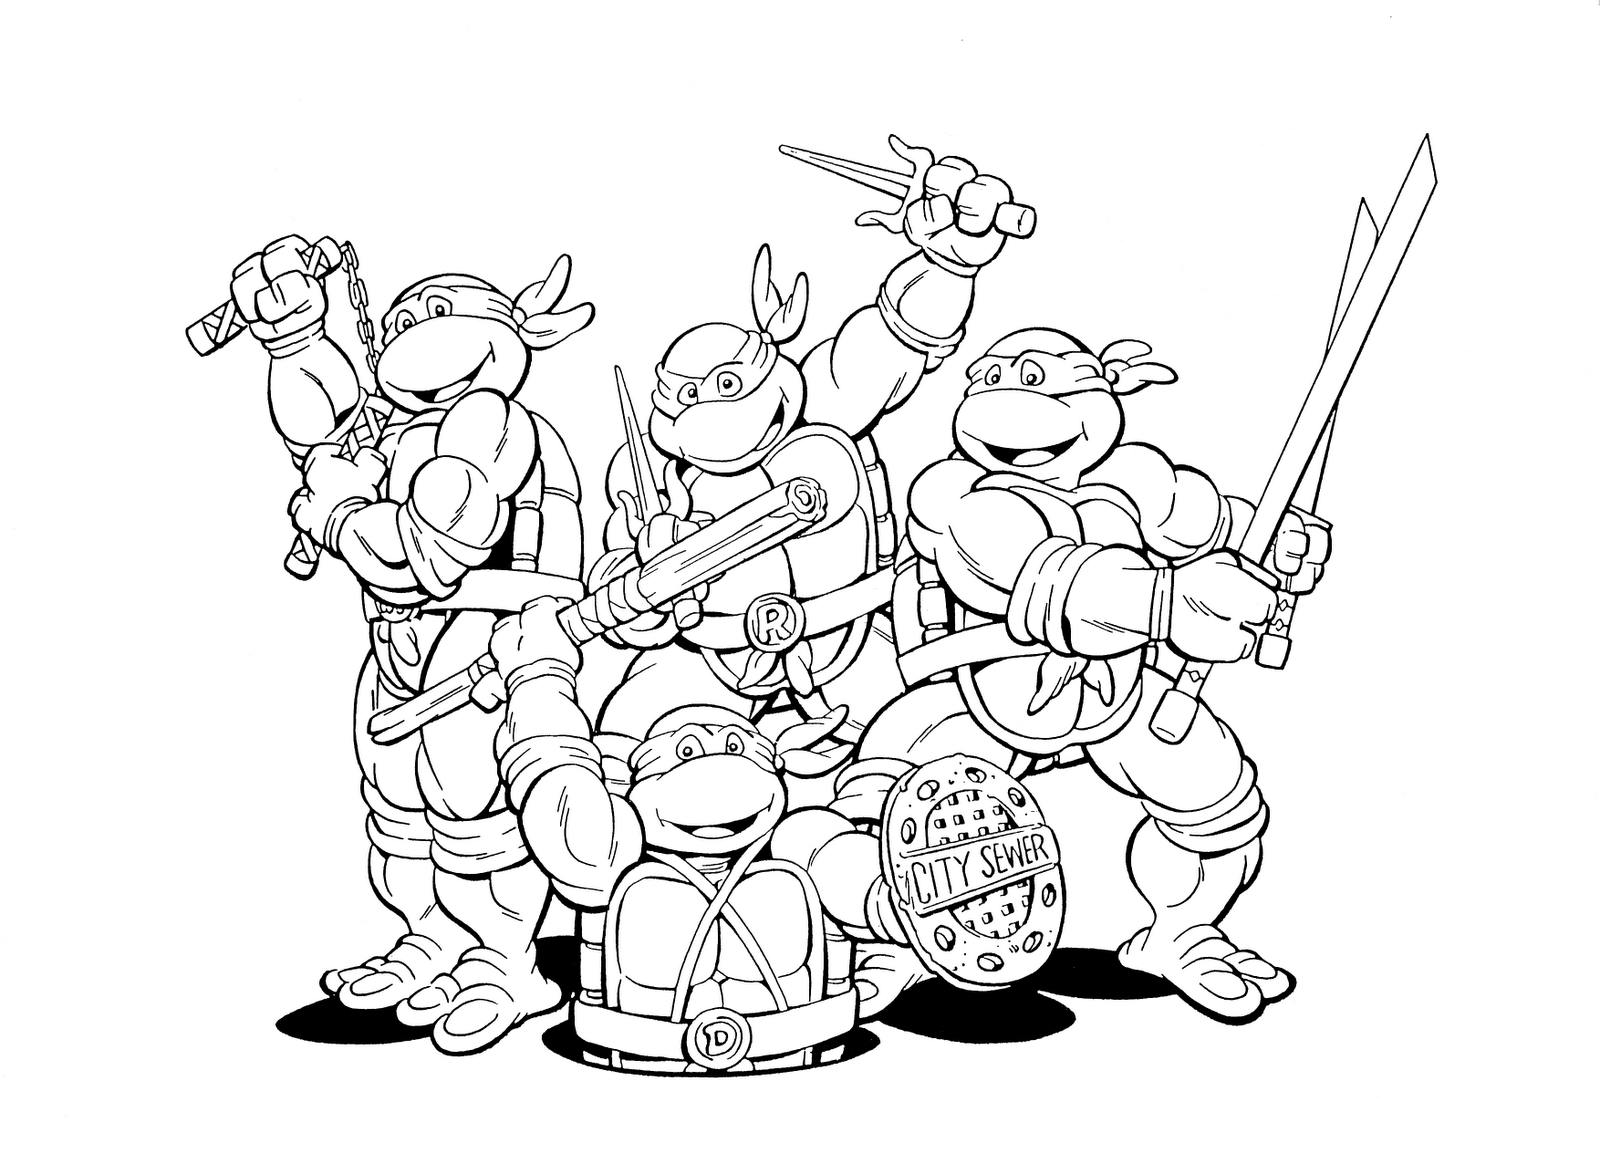 Trends Check More At Https Bo Peep Club Teenage Ninja Turtle Coloring Pages Coloriage Coloriage Walt Disney Coloriage Tortue Ninja